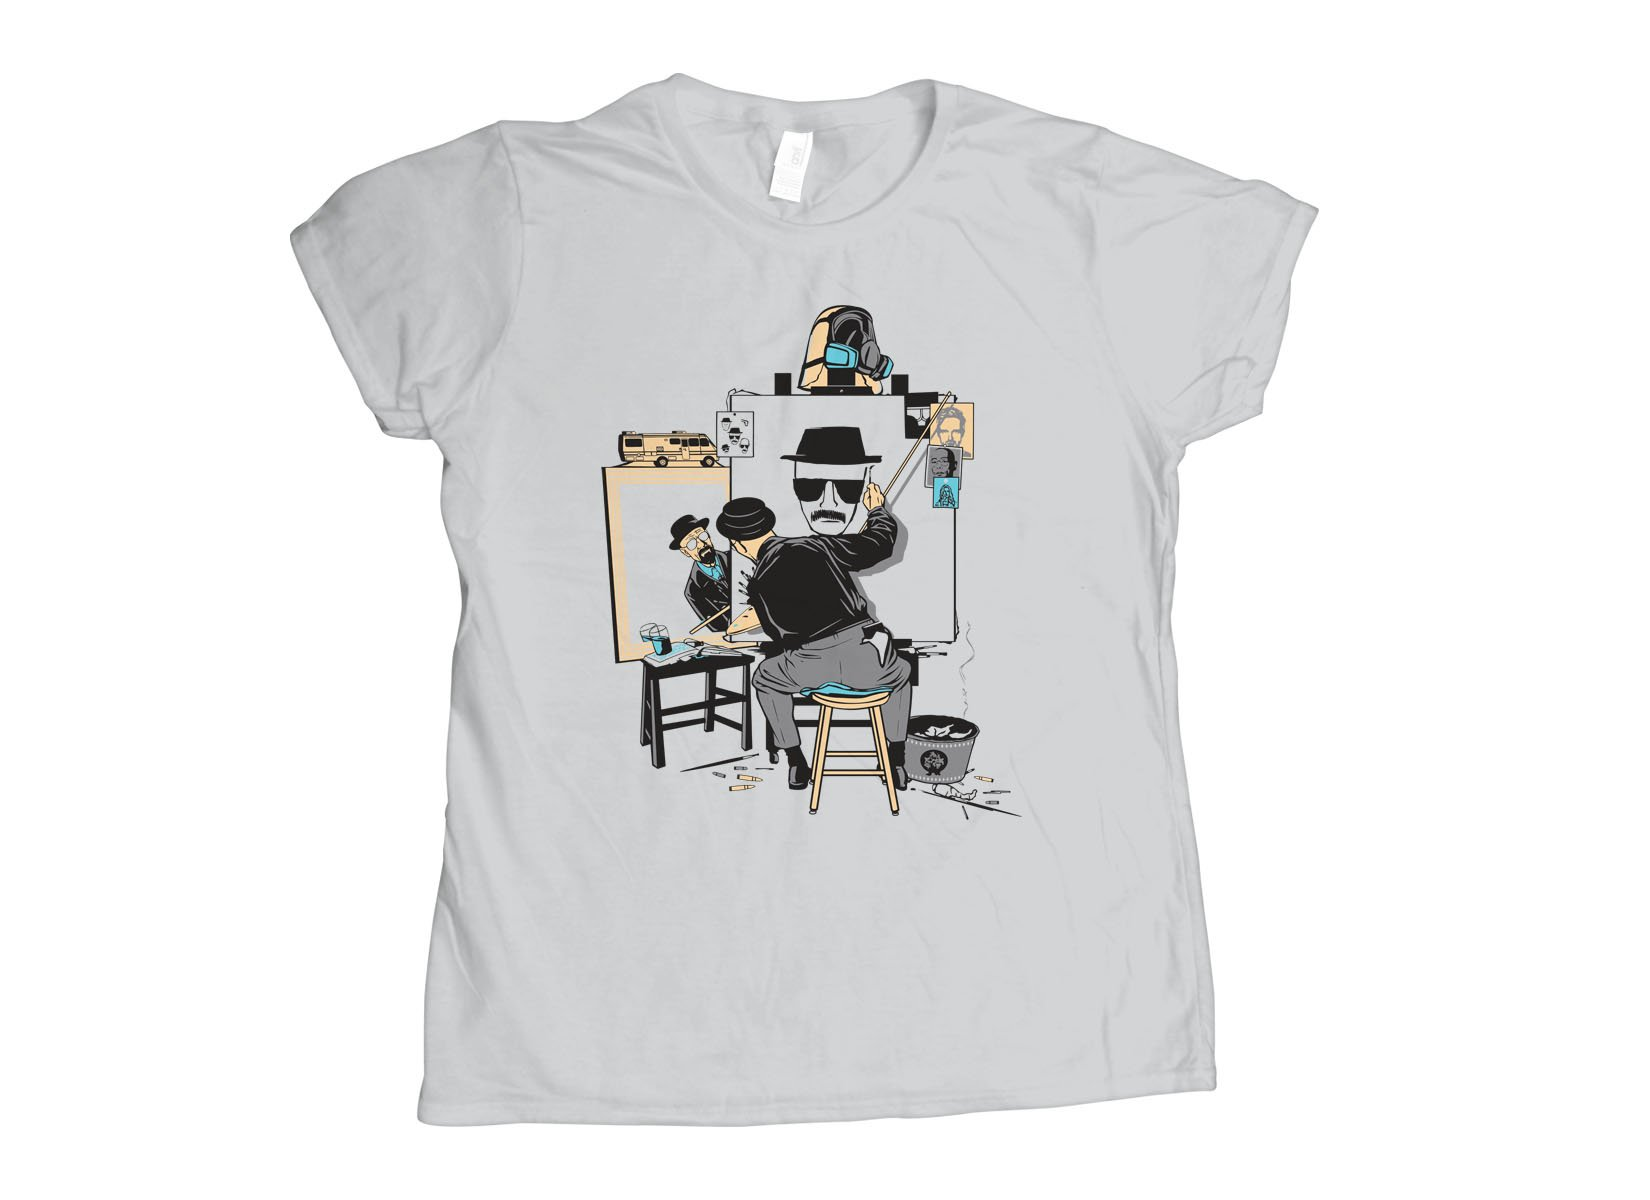 Heisenberg Self Portrait on Womens T-Shirt